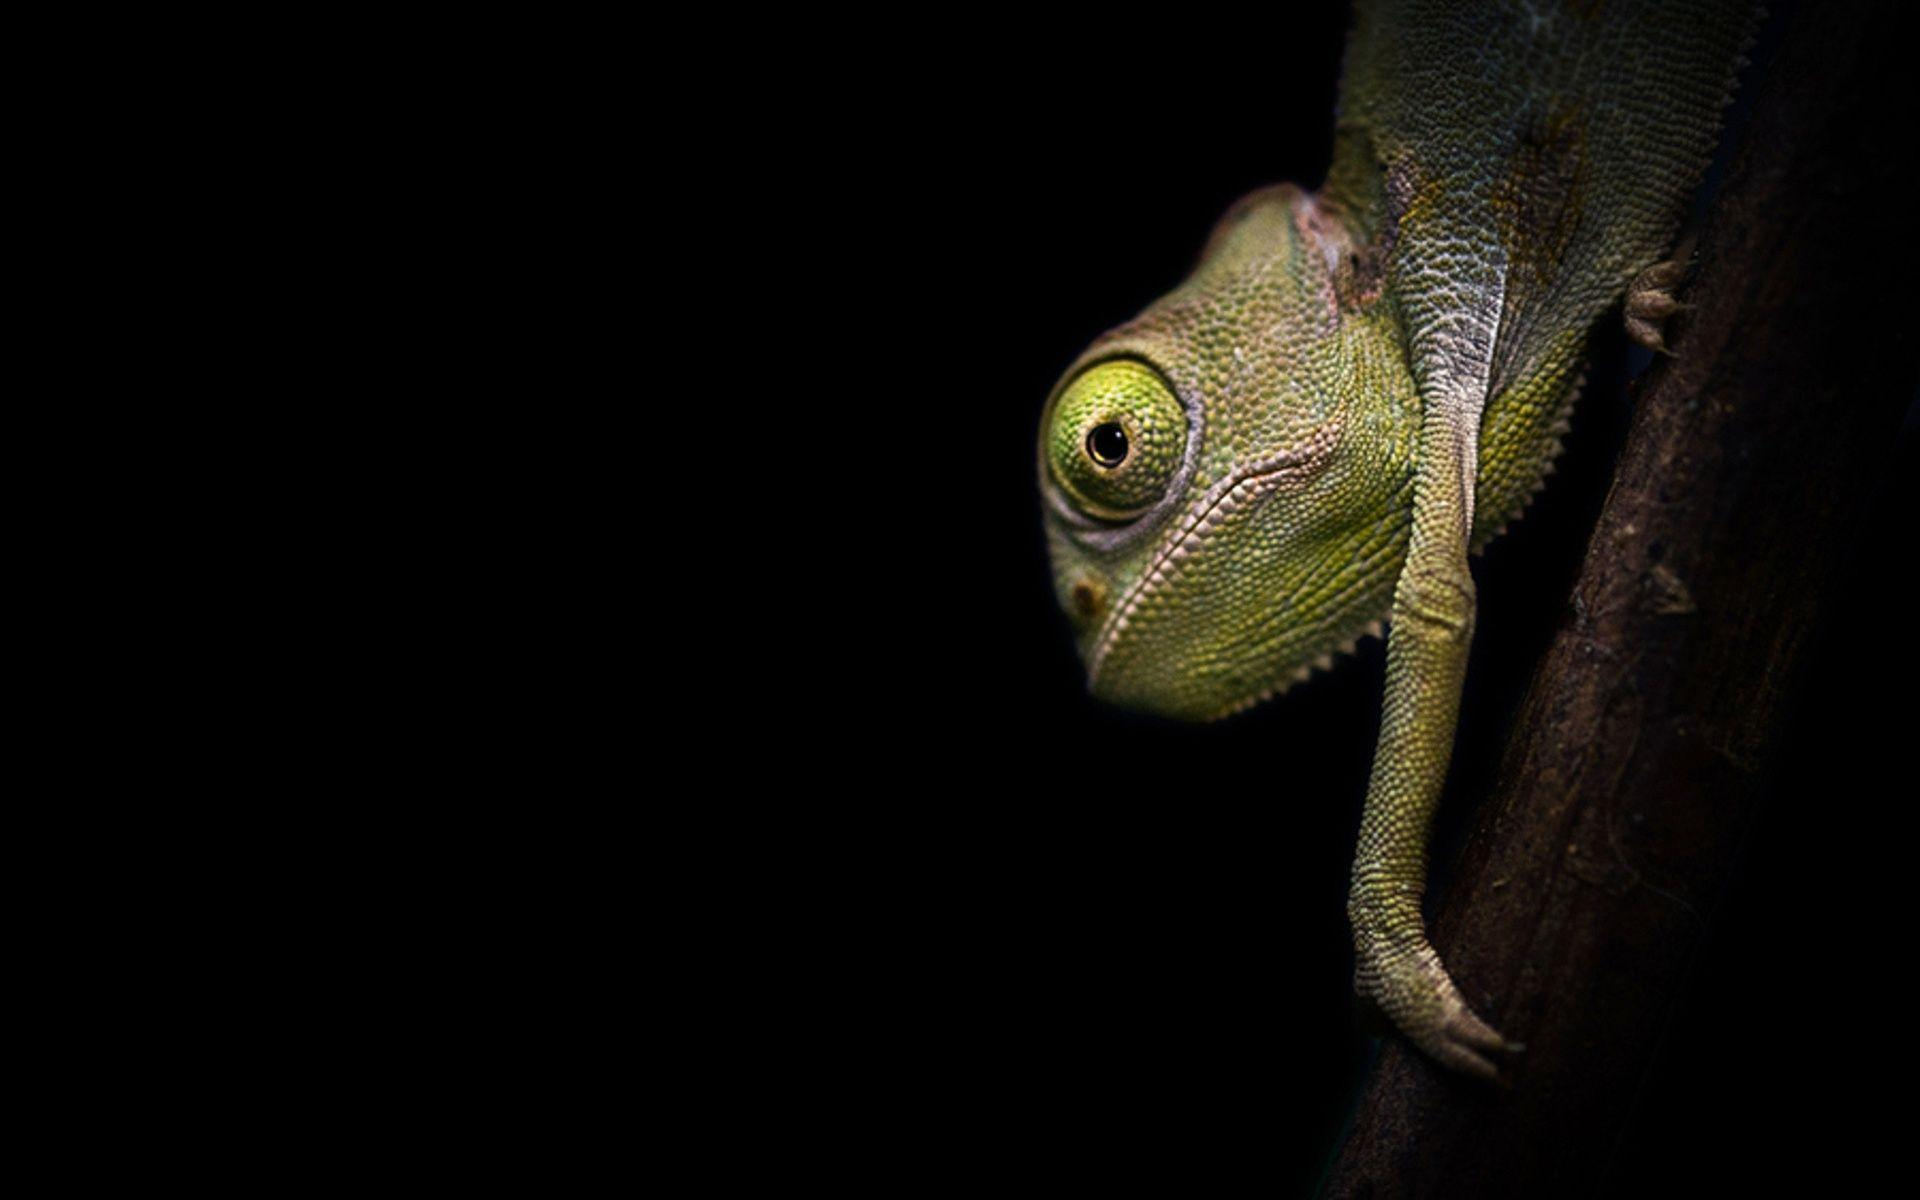 chameleon wallpaper 1920x1200 - photo #2